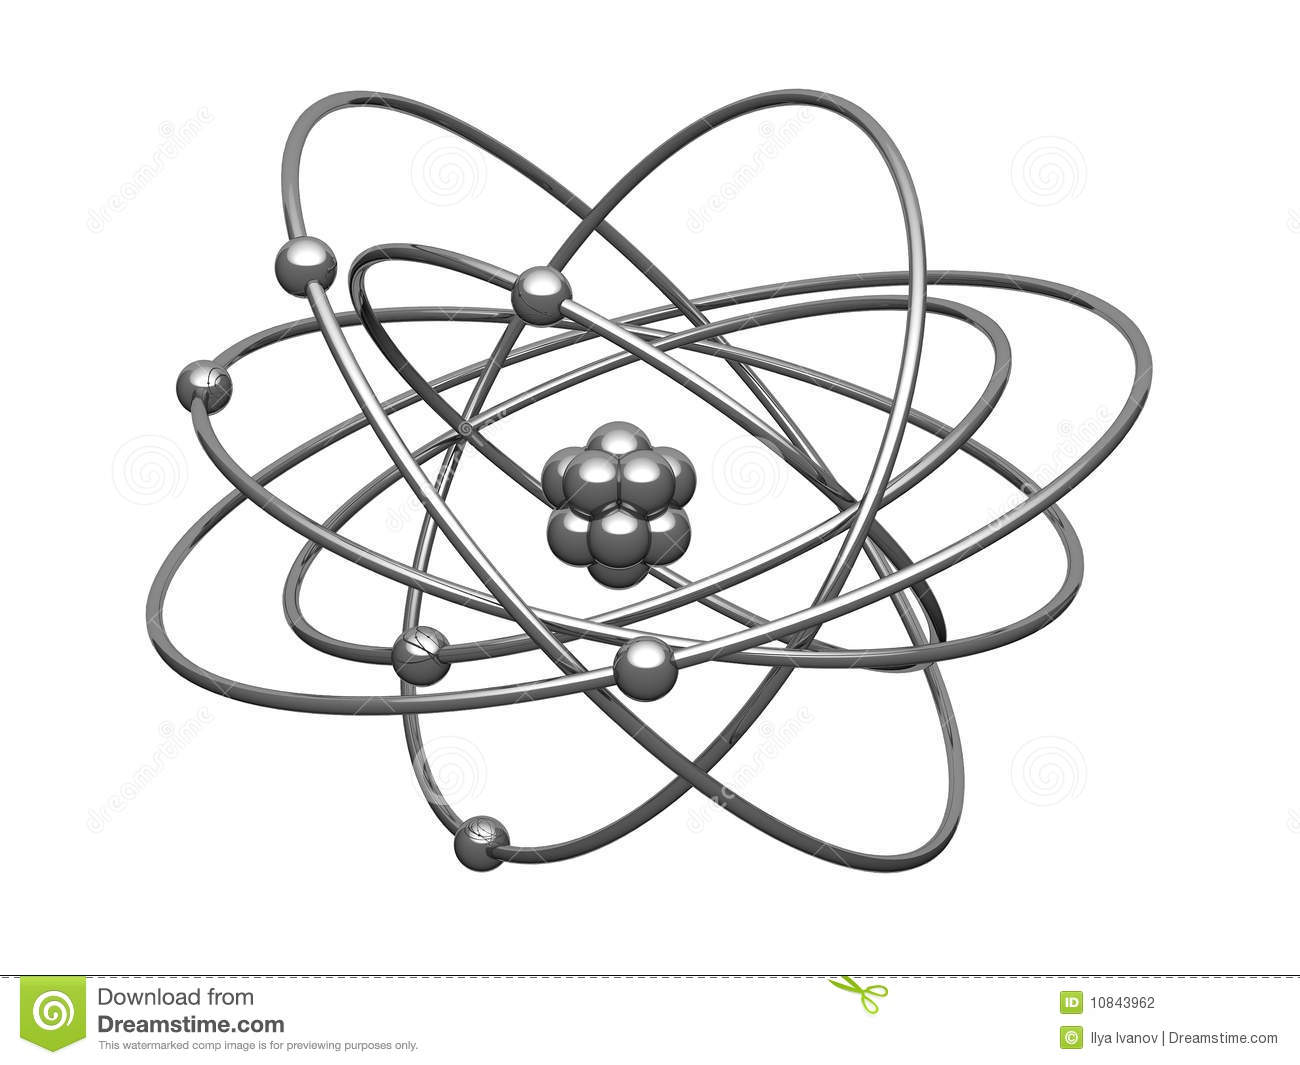 Silver model of the atom with central kernel surrounded electrons